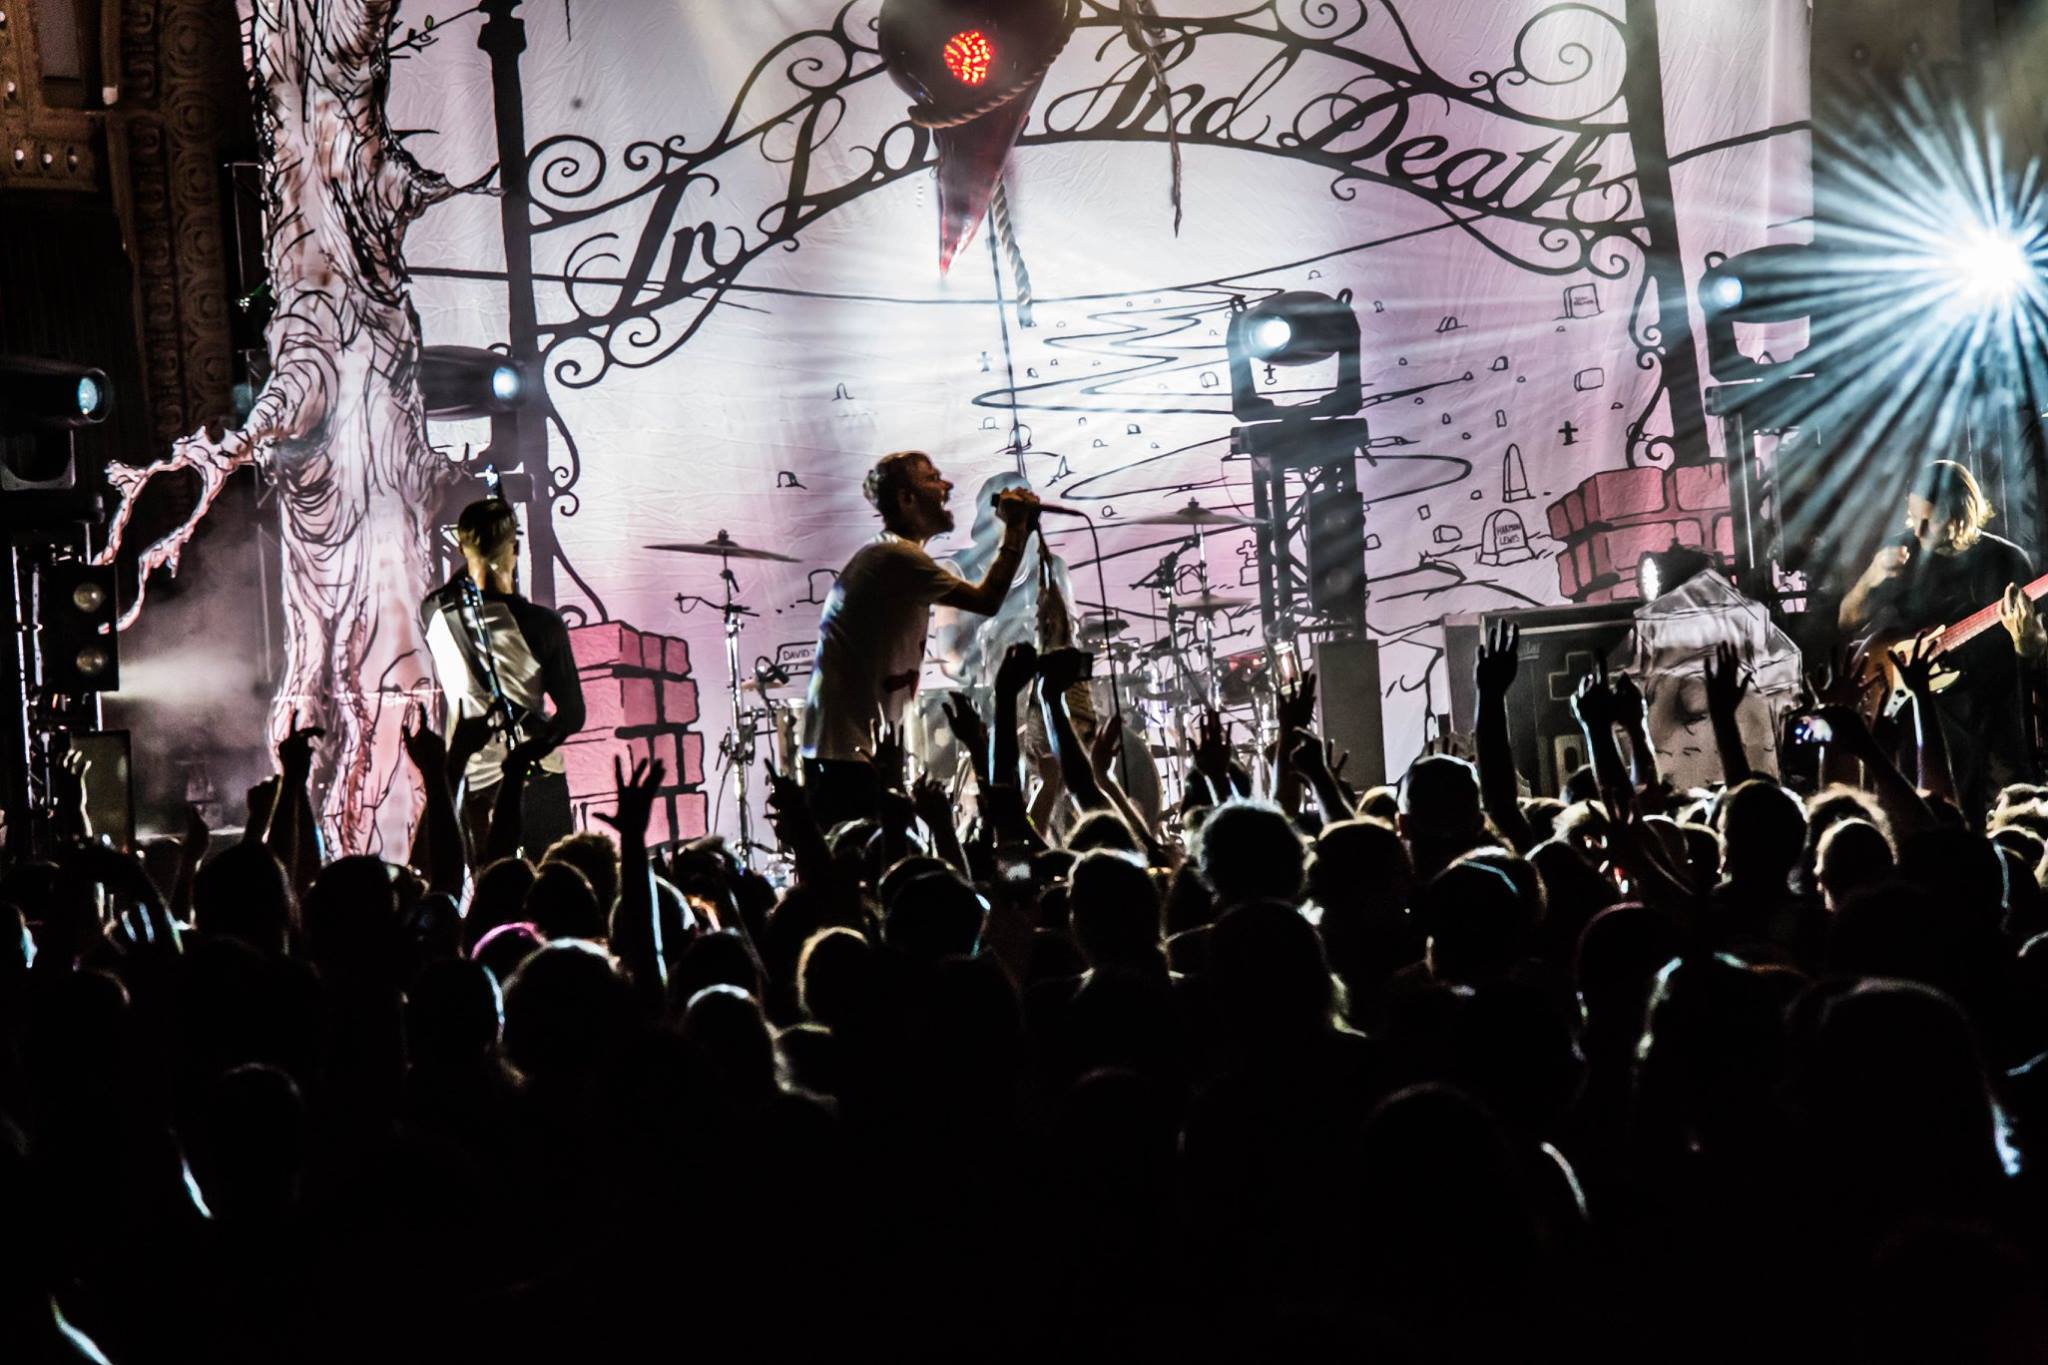 The Used at the Crystal Ballroom in Portland. Credit: Bright Music Photography